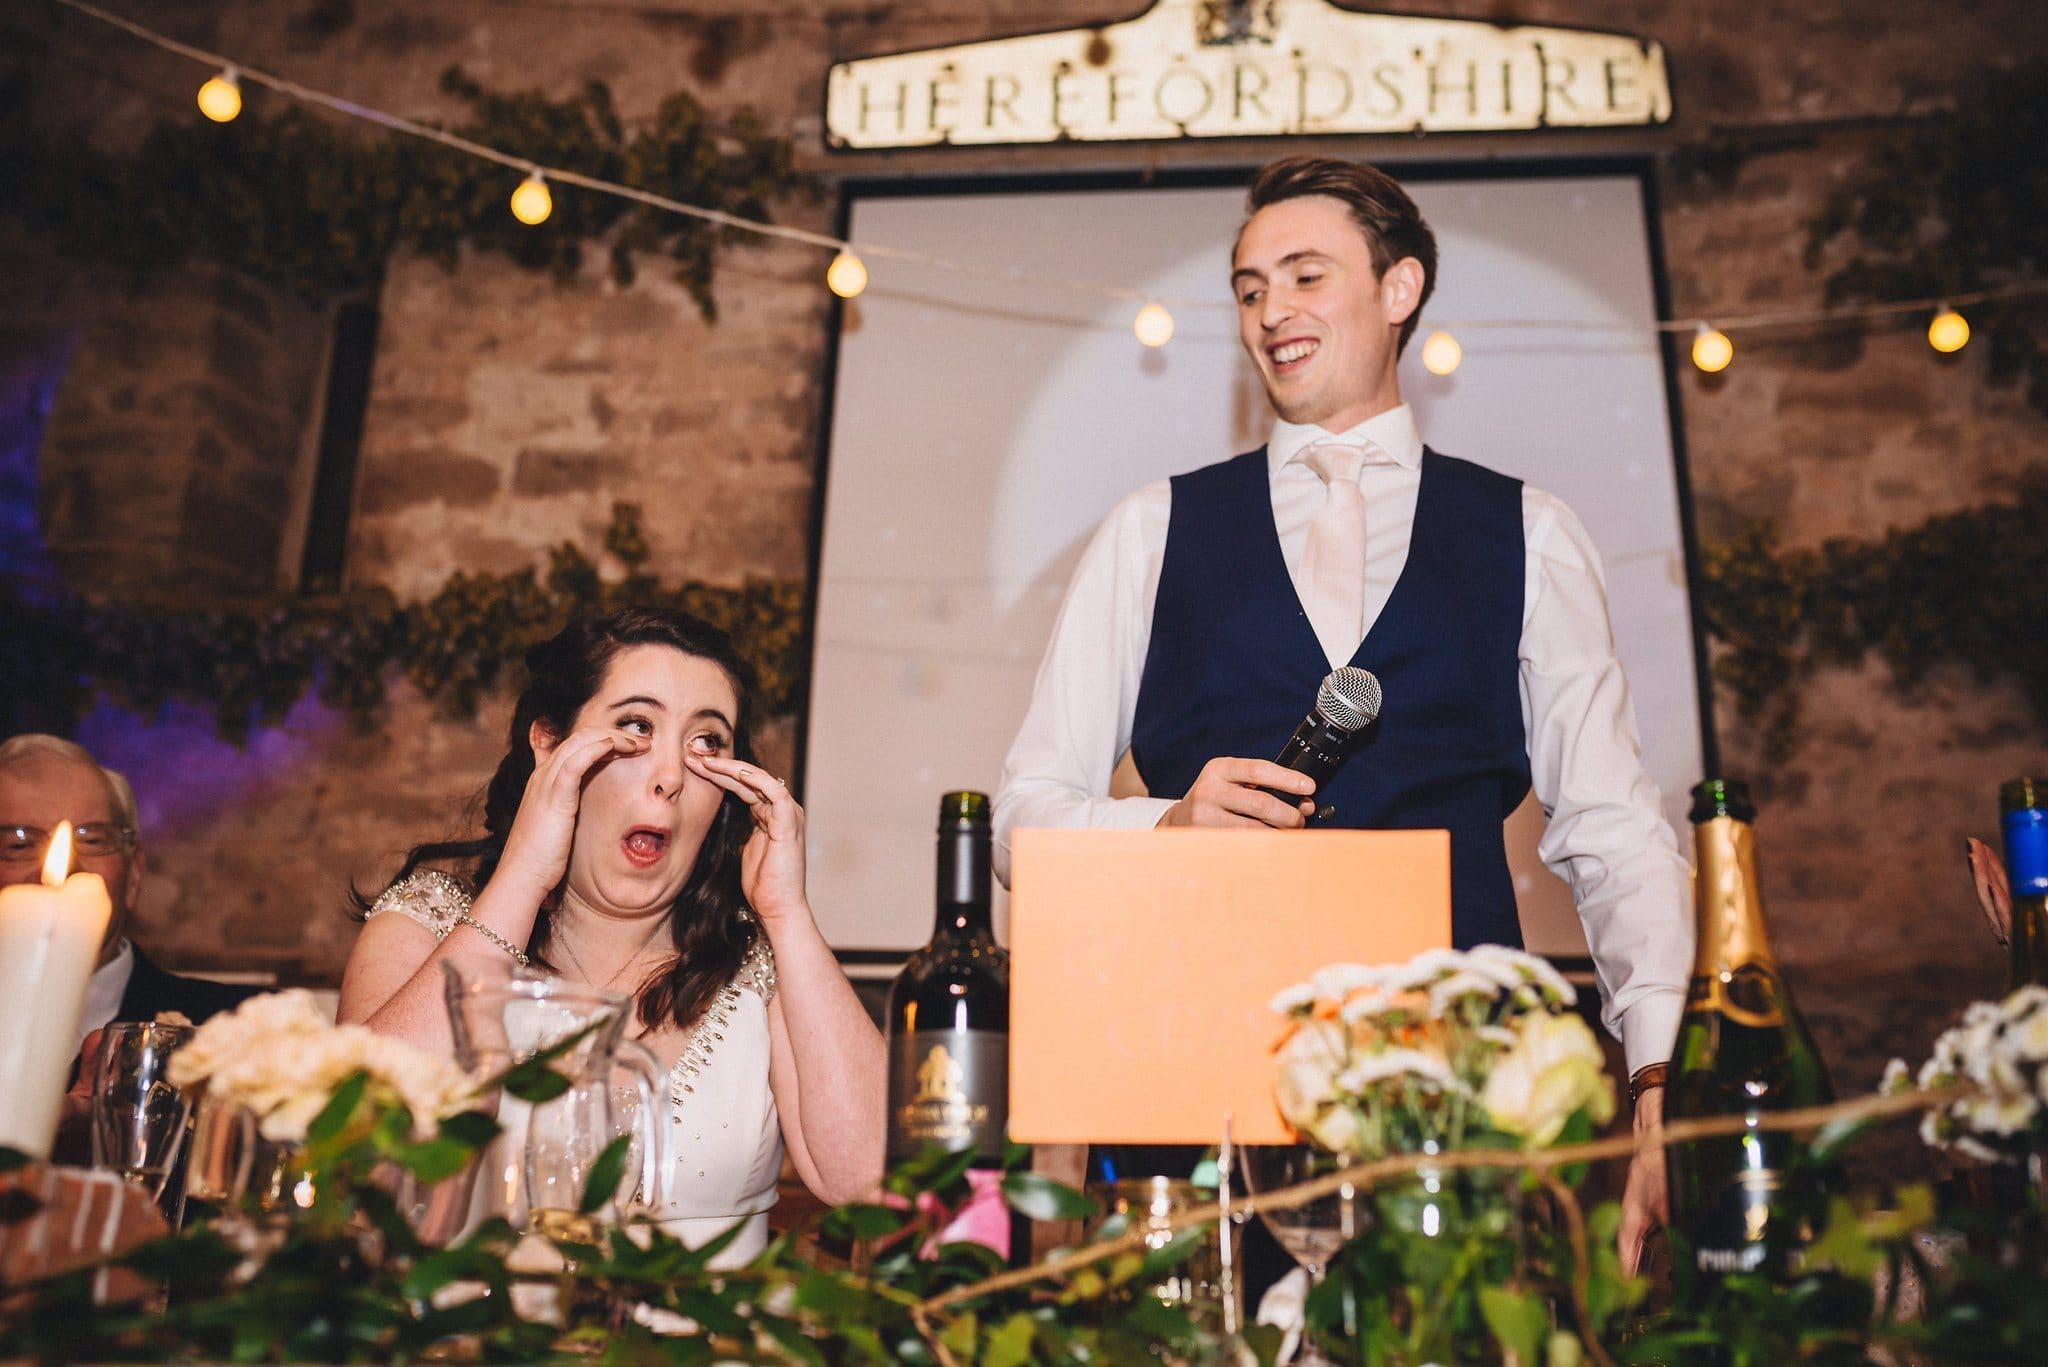 Bride wipes tears from her eyes as groom makes his speech